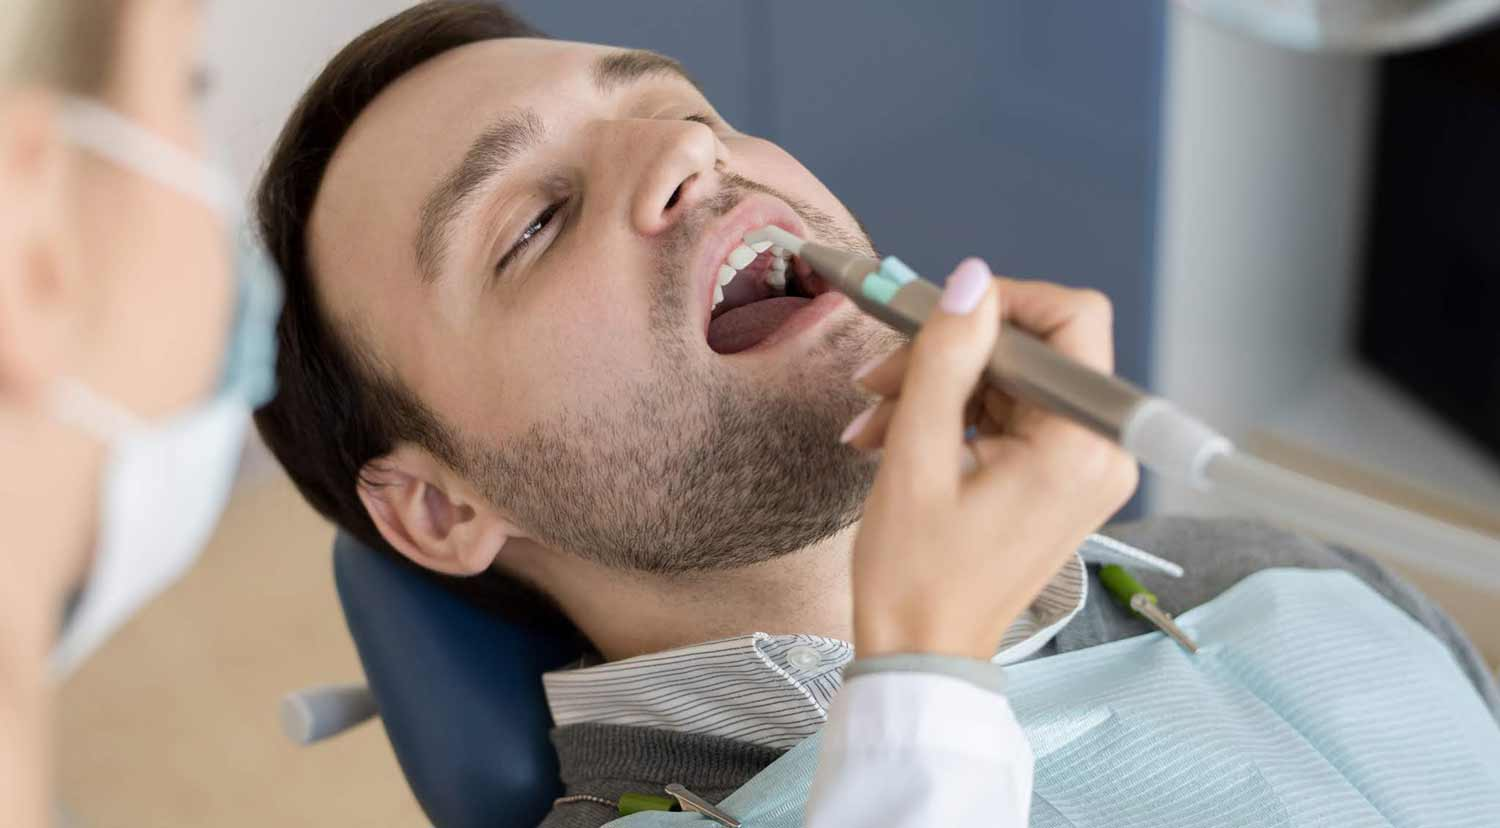 implany cavity Cavity – How To Prevent implany